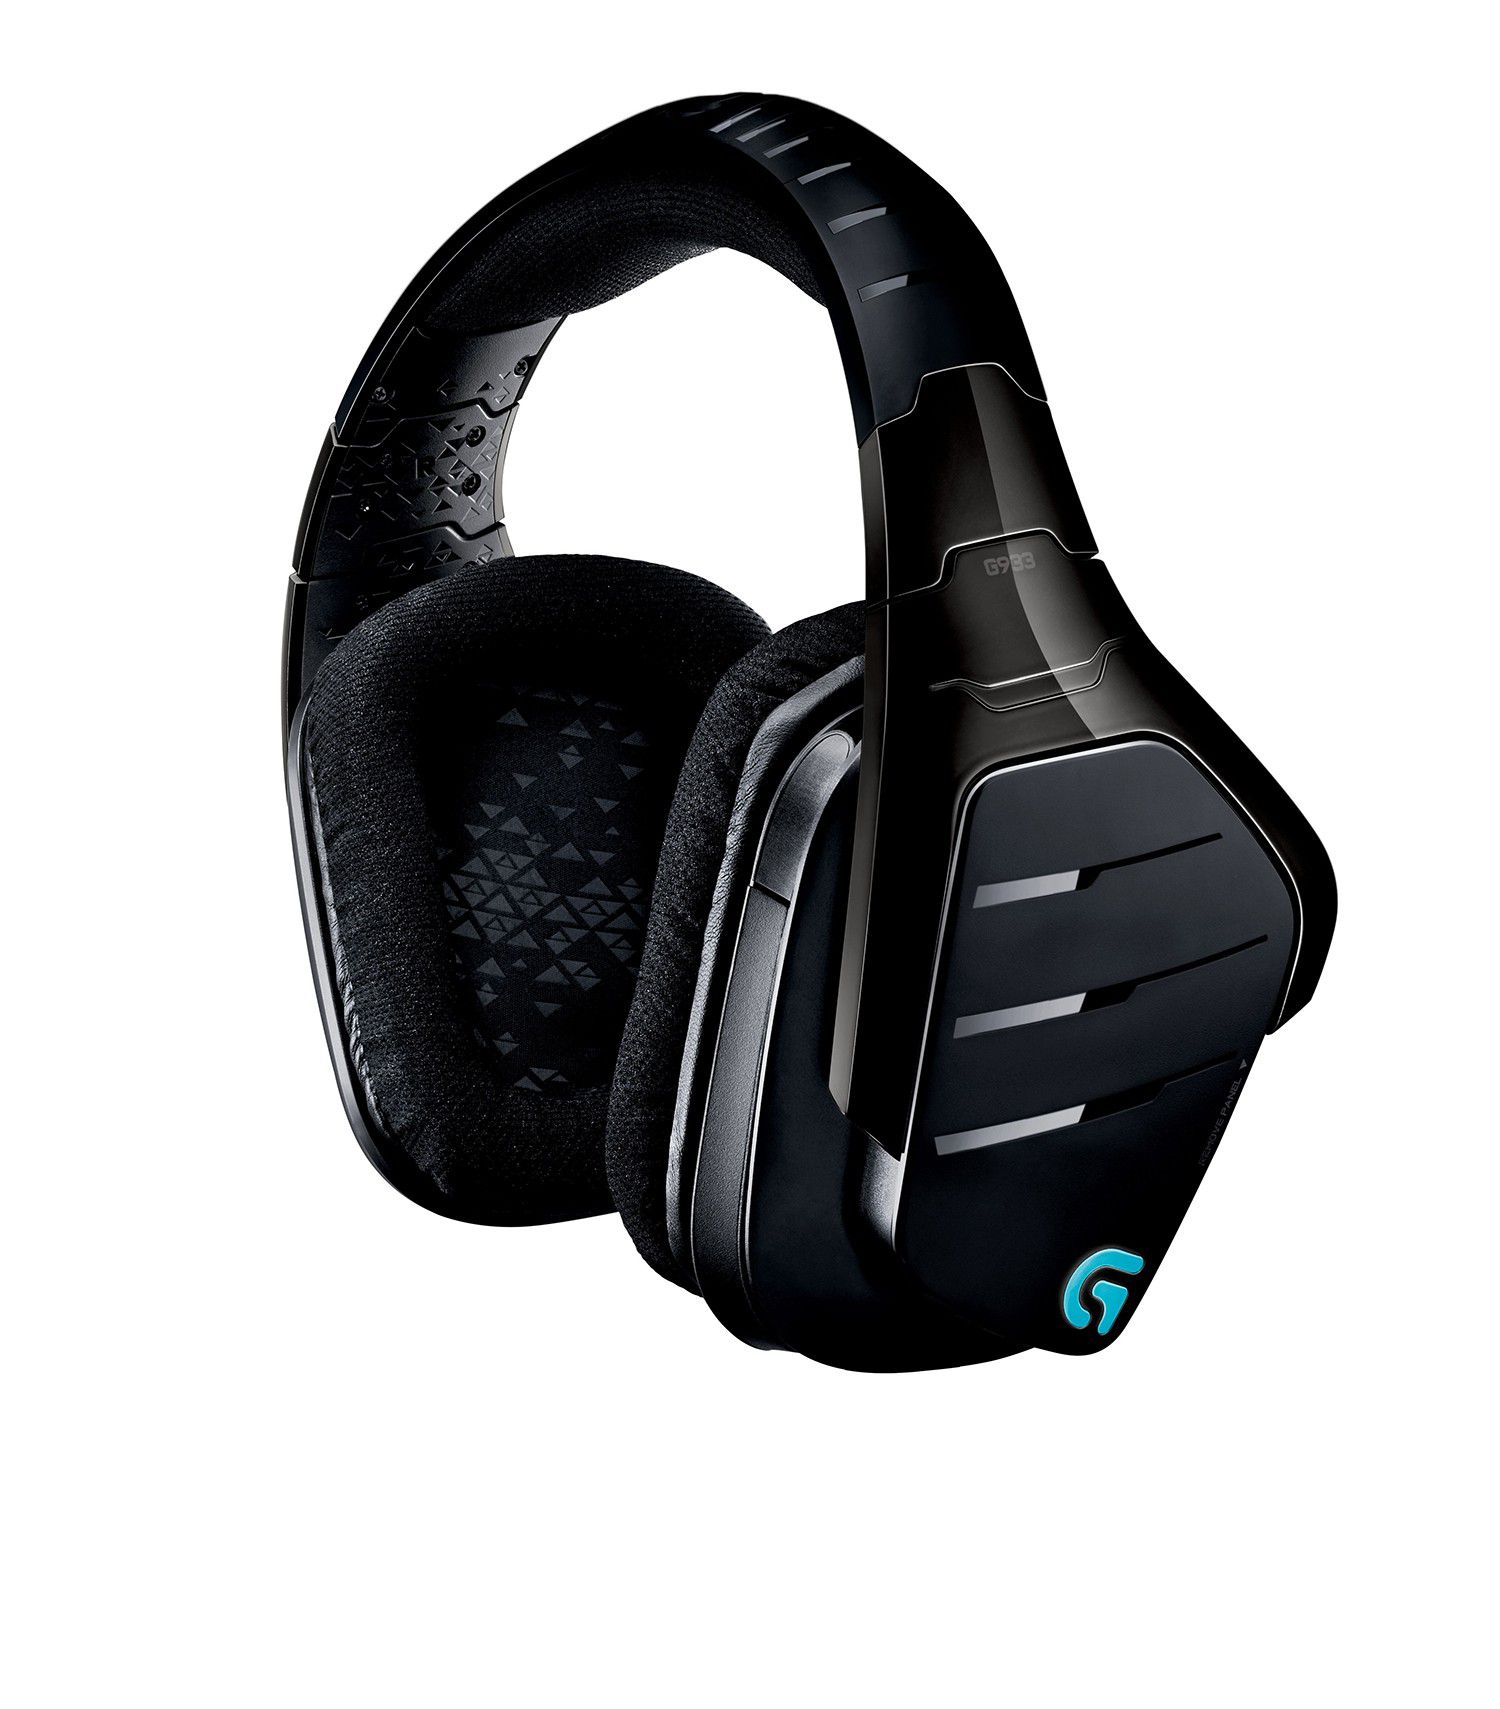 Black Friday Casque Gaming Sans Fil Logitech G933 à 125 Les